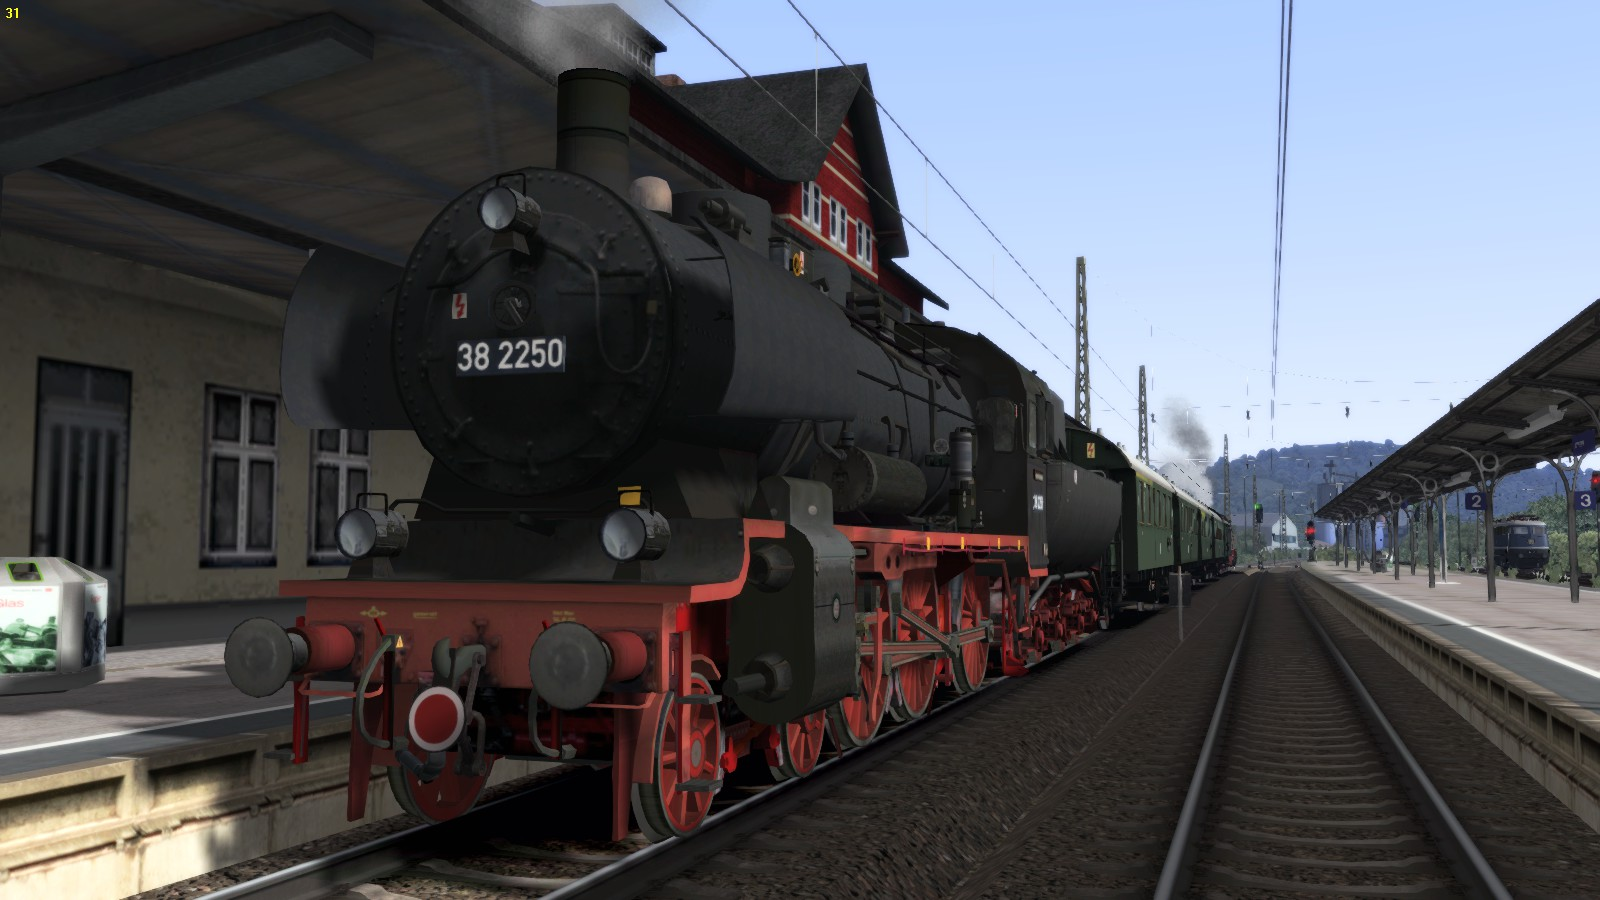 https://i2.wp.com/www.steamtrainsunlimited.com/wp-content/uploads/2016/06/2015-11-12_00024.jpg